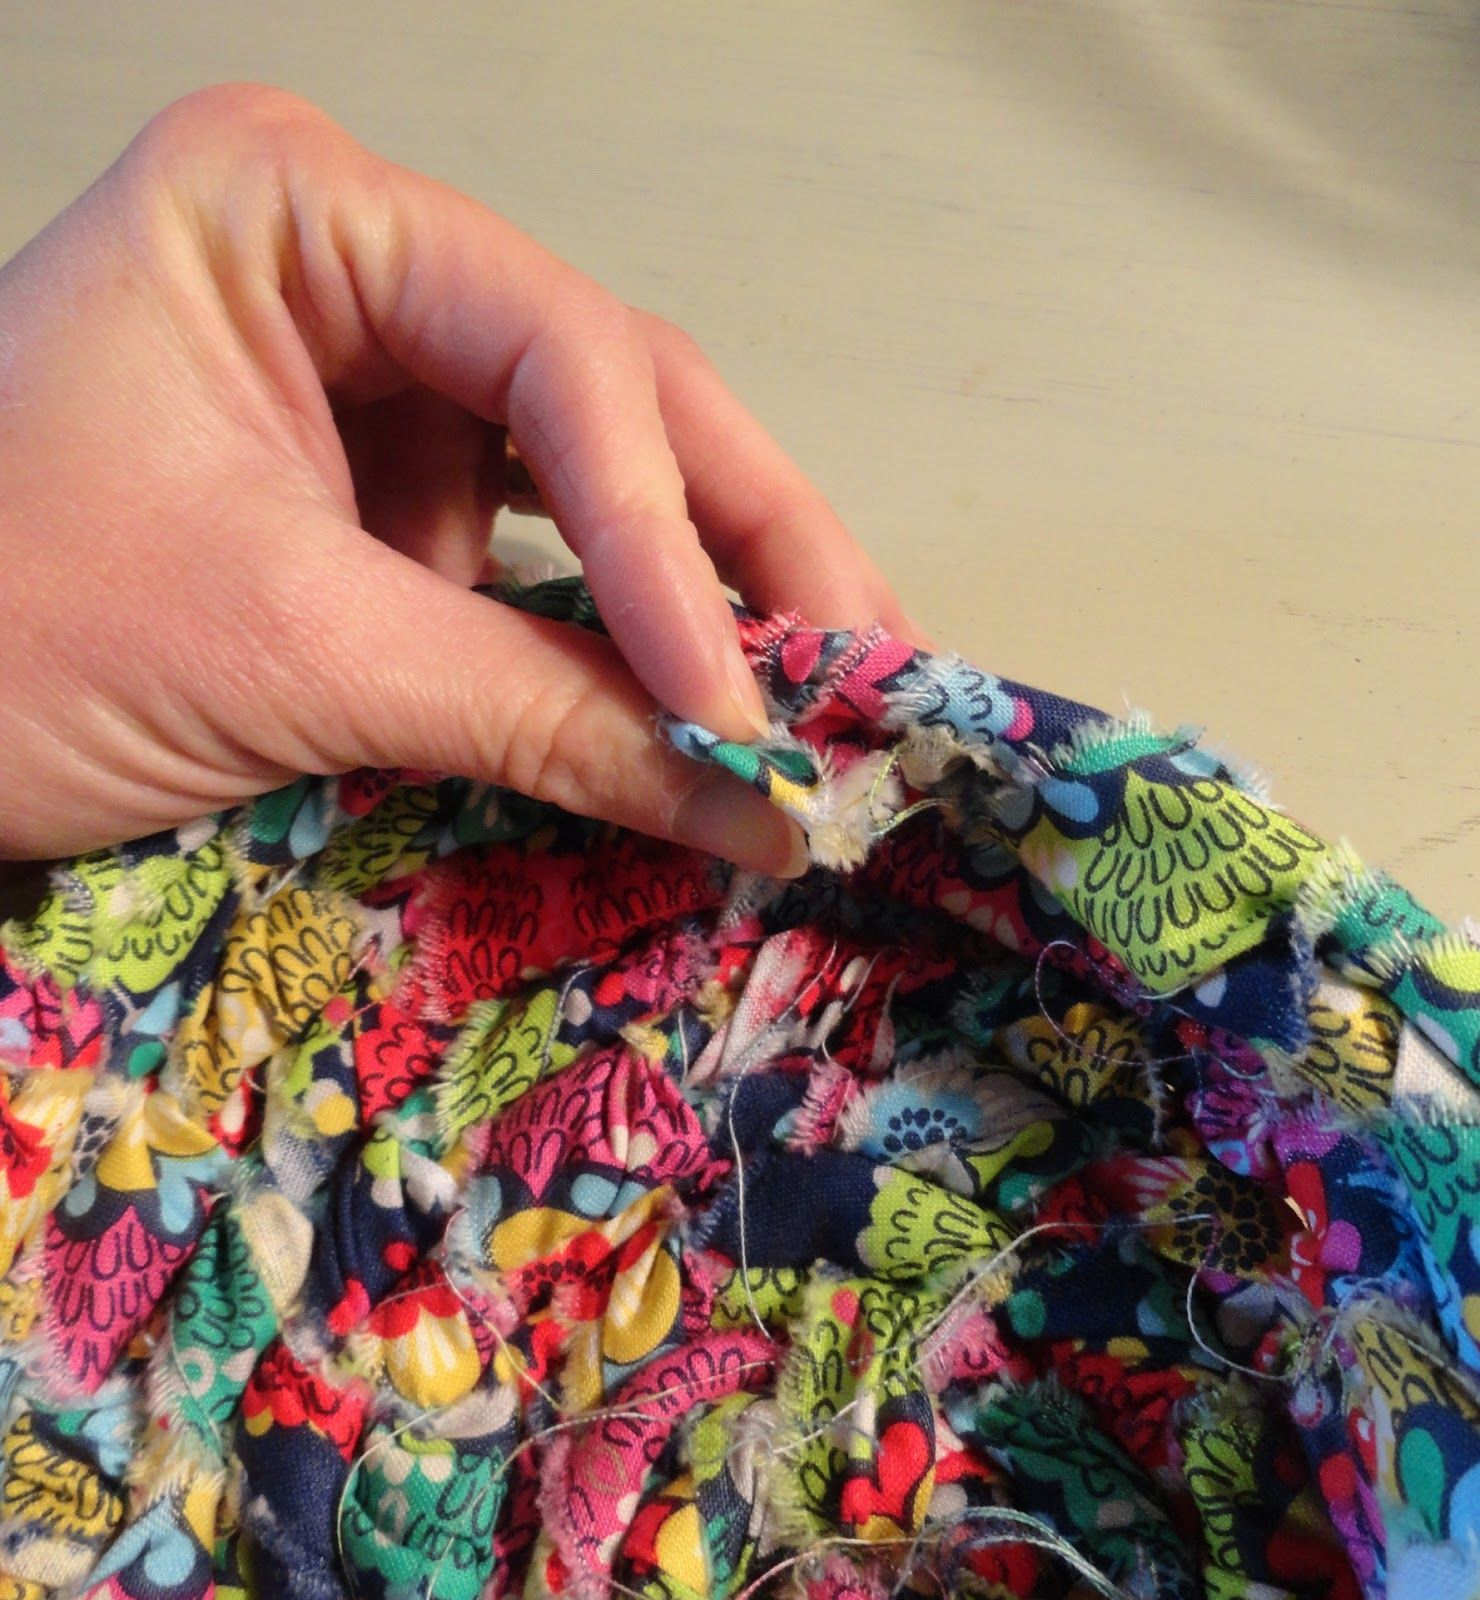 Holy Craft: Woven clothesline scrap fabric basket tutorial #scrapfabric